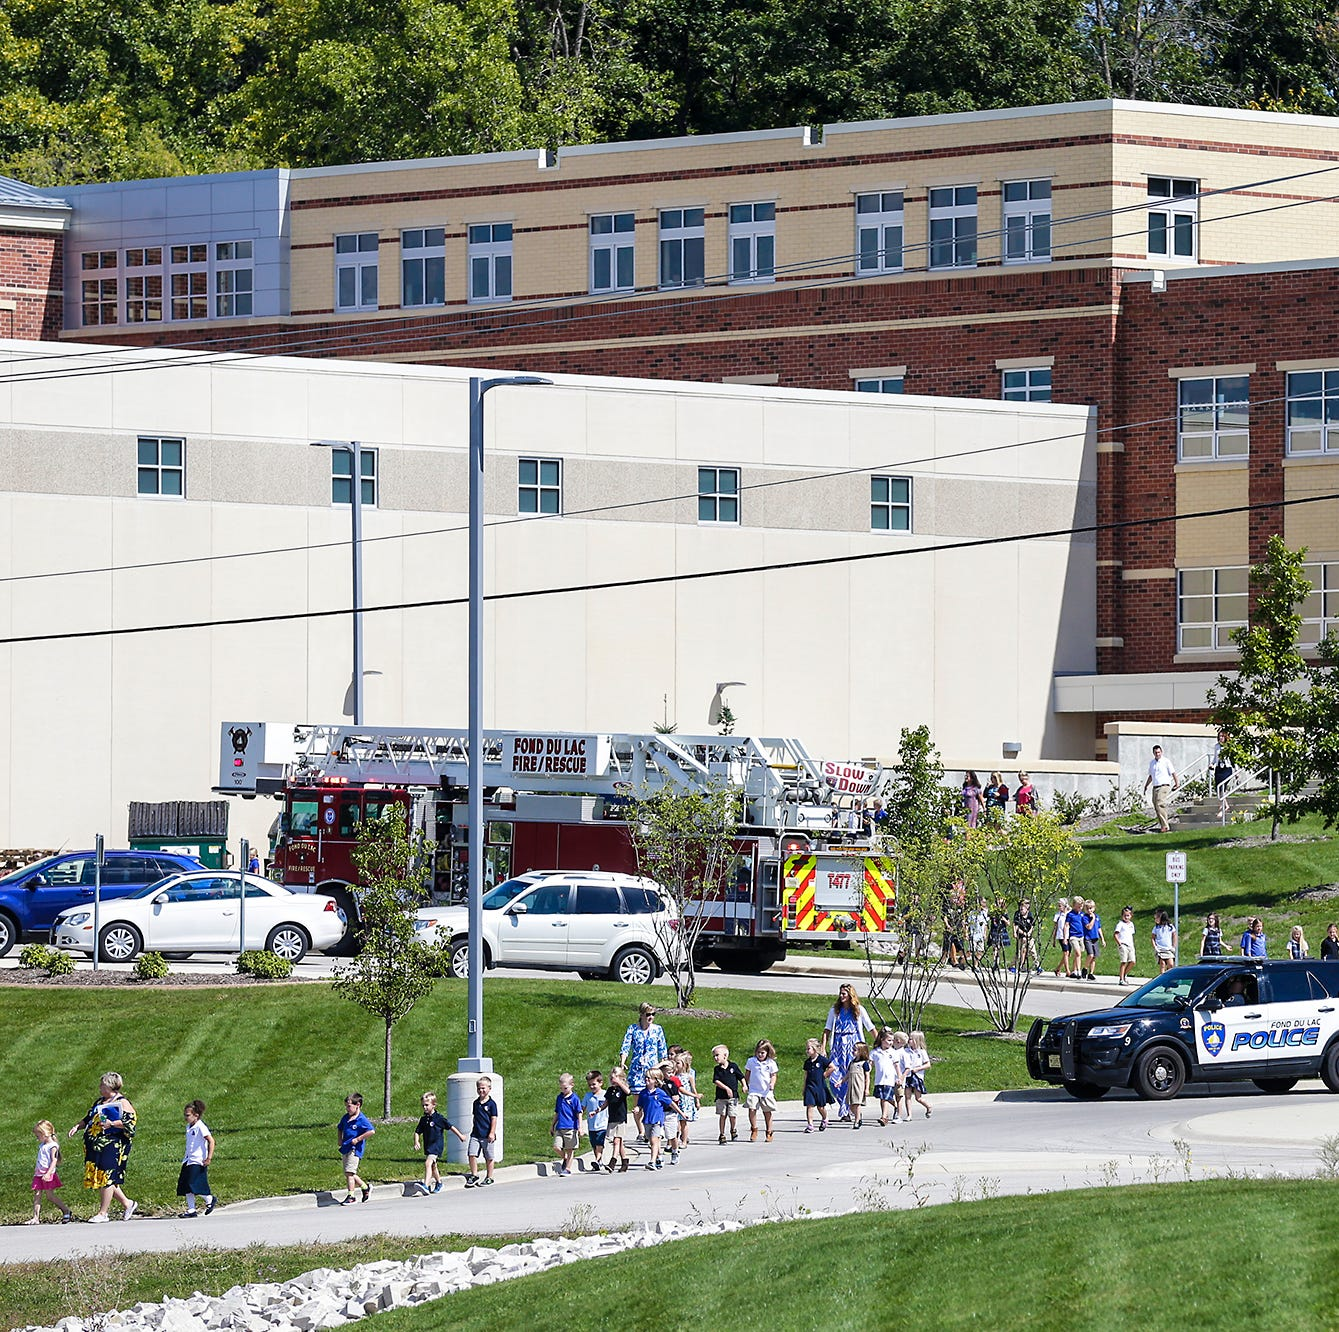 St. Mary's Springs evacuates students after reported gas leak, but it was a false alarm